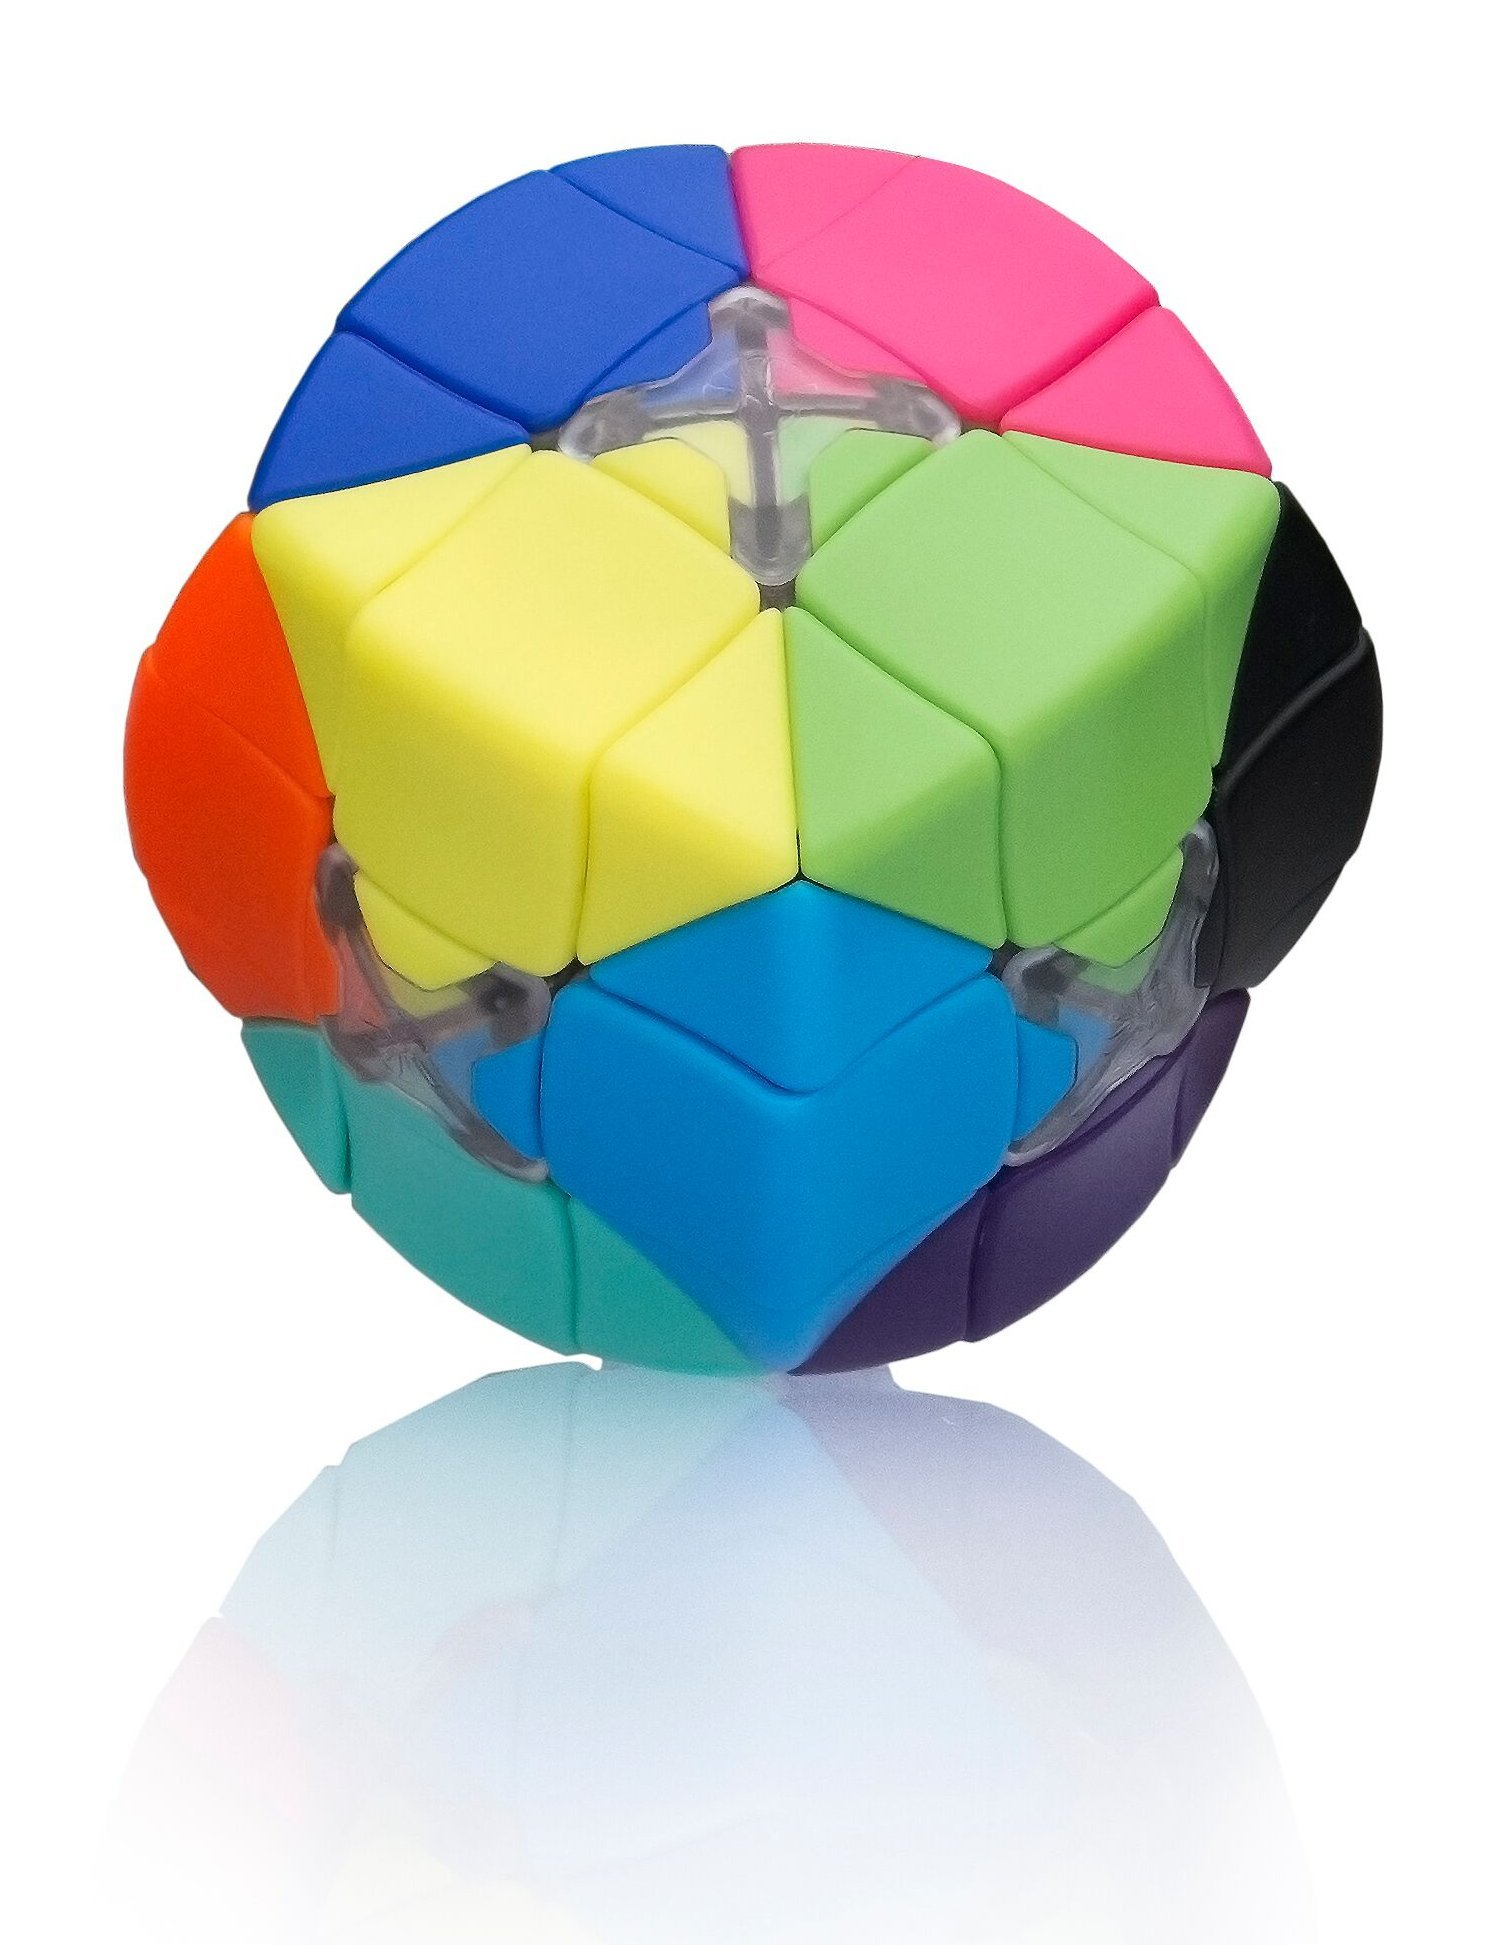 Armadillo Cube: Smooth turning - Stickerless - 12 Candy Colors - Resettable - Awesome Brain Teaser - Advanced 3x3x3 Puzzle - Brand New Challenges - 100% Money Back Guarantee! by Armadillo Cube (Image #1)